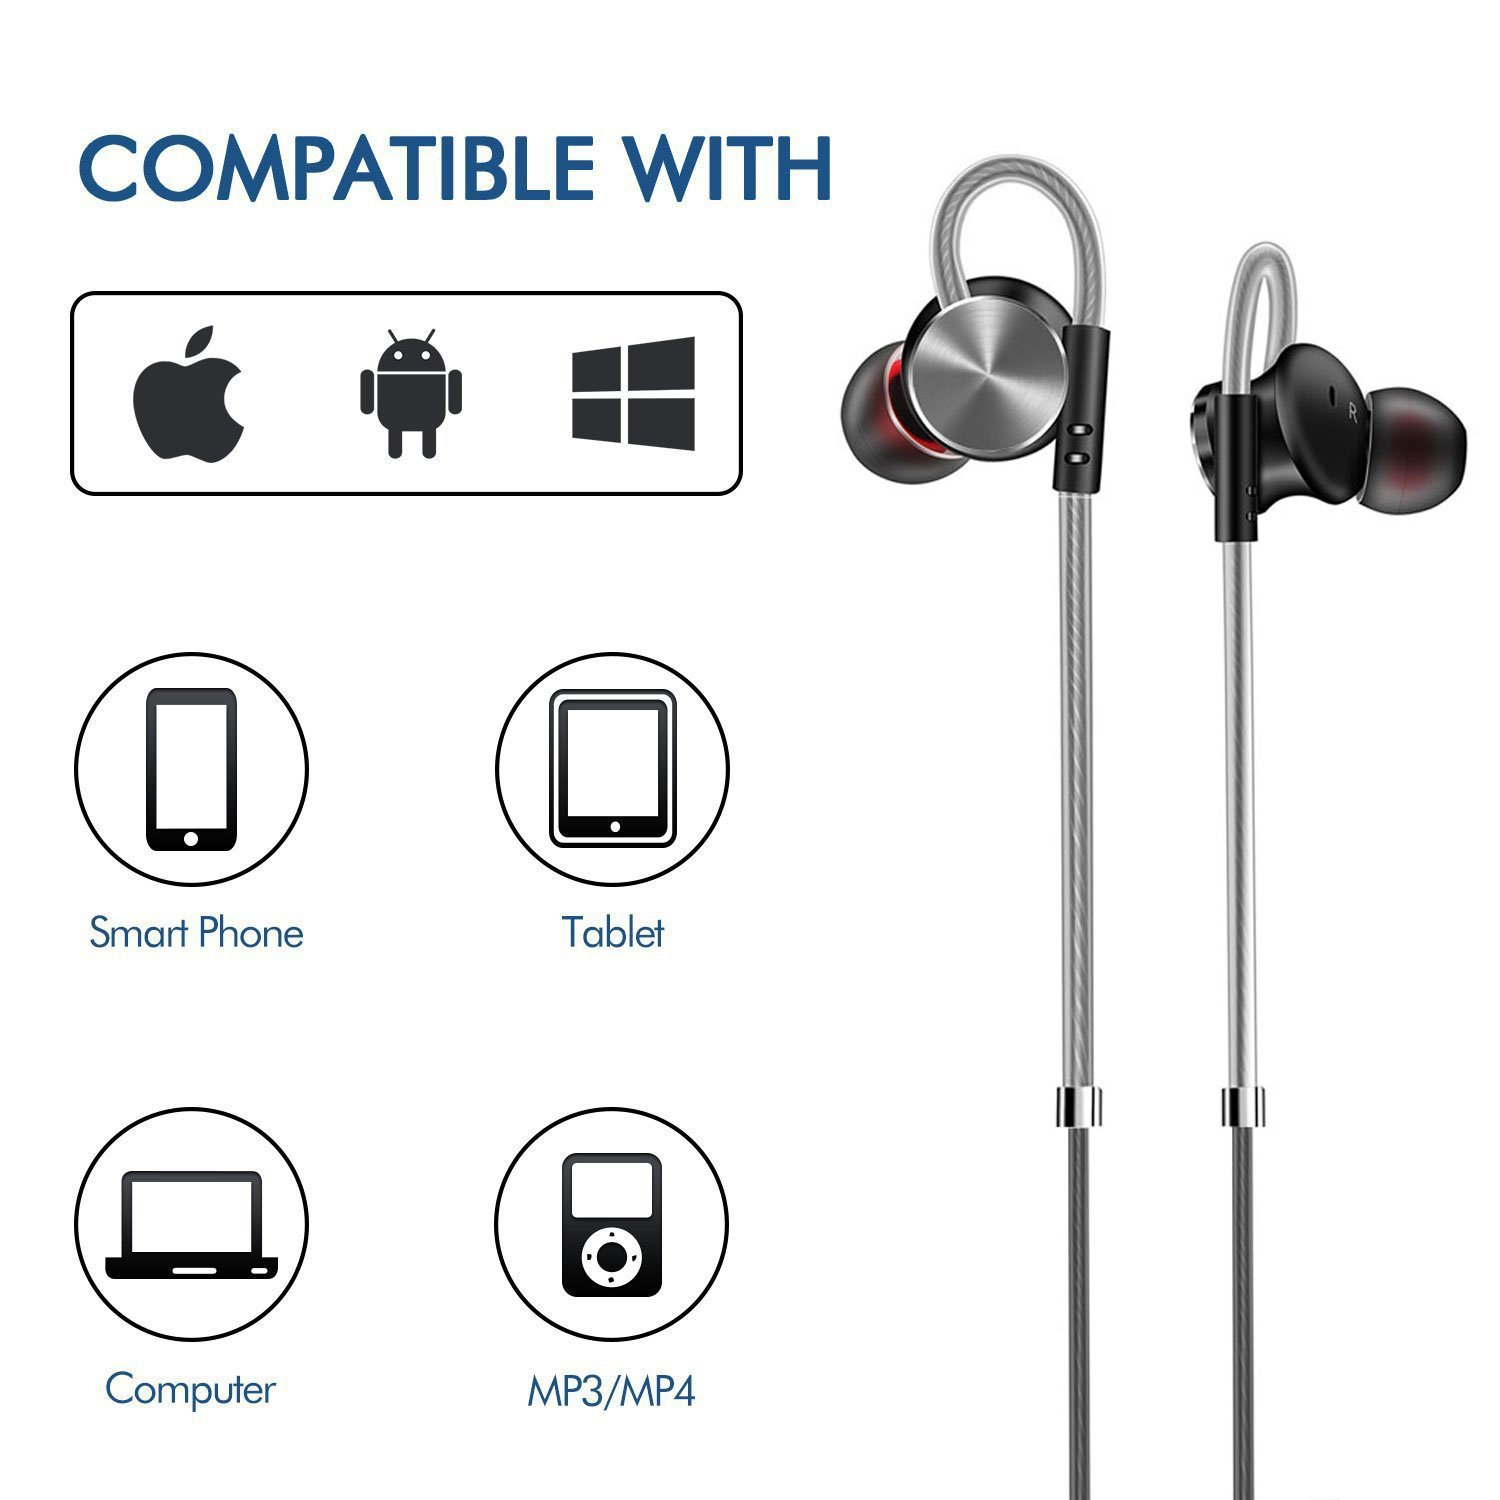 Seattle Cell Market Llc moreover Iphone 4 Headphone Audio Jack Assembly Verizon Black also Nillkin Barde Metal Case With Ring For Xiaomi Mi6 19 furthermore Lti Direct Premium Quality Headphones Earphones For Iphone X 8 8 Plus 7 7 Plus 6 6s Plus Samsung Galaxy S6 S7 S8 Note 4 5 6 7 Note 8 Lg V10 V20 V30 G5 G6 Htc Black B073CMMB58 furthermore Official Samsung Galaxy S6 Earphones White 54230 Reviews. on earphones samsung galaxy s6